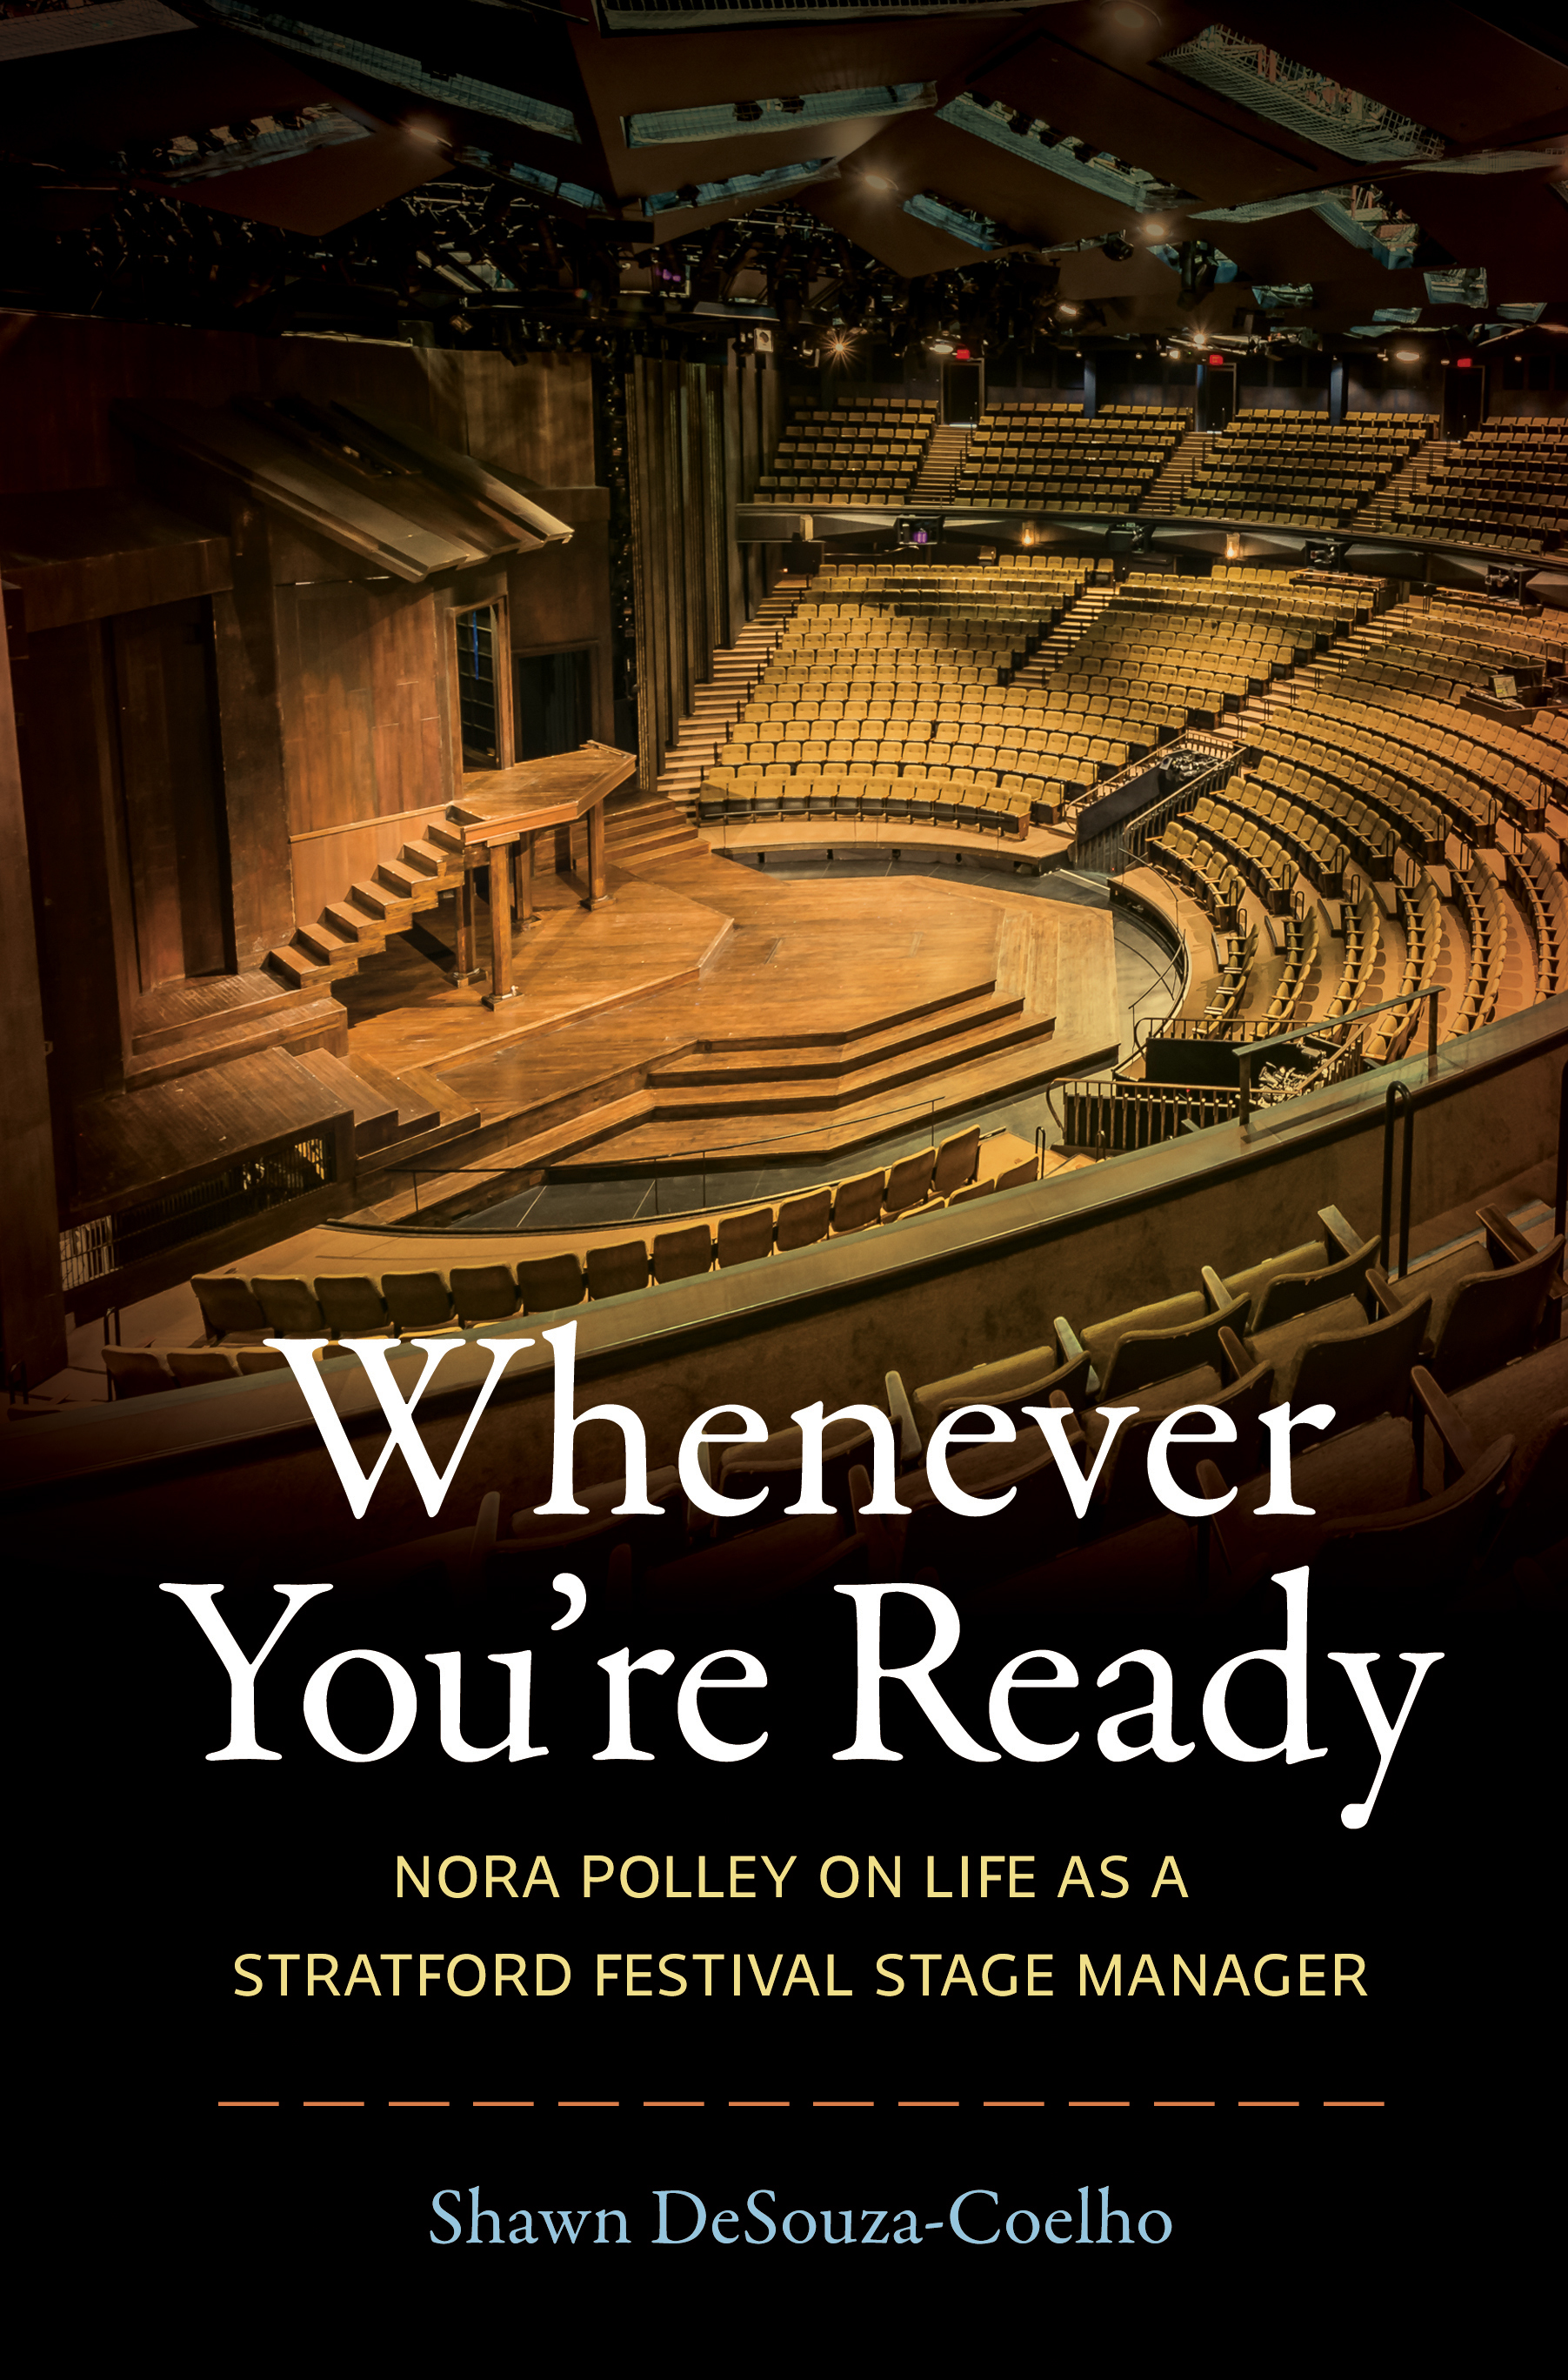 Whenever You're Ready Nora Polley on Life as a Stratford Festival Stage Manager